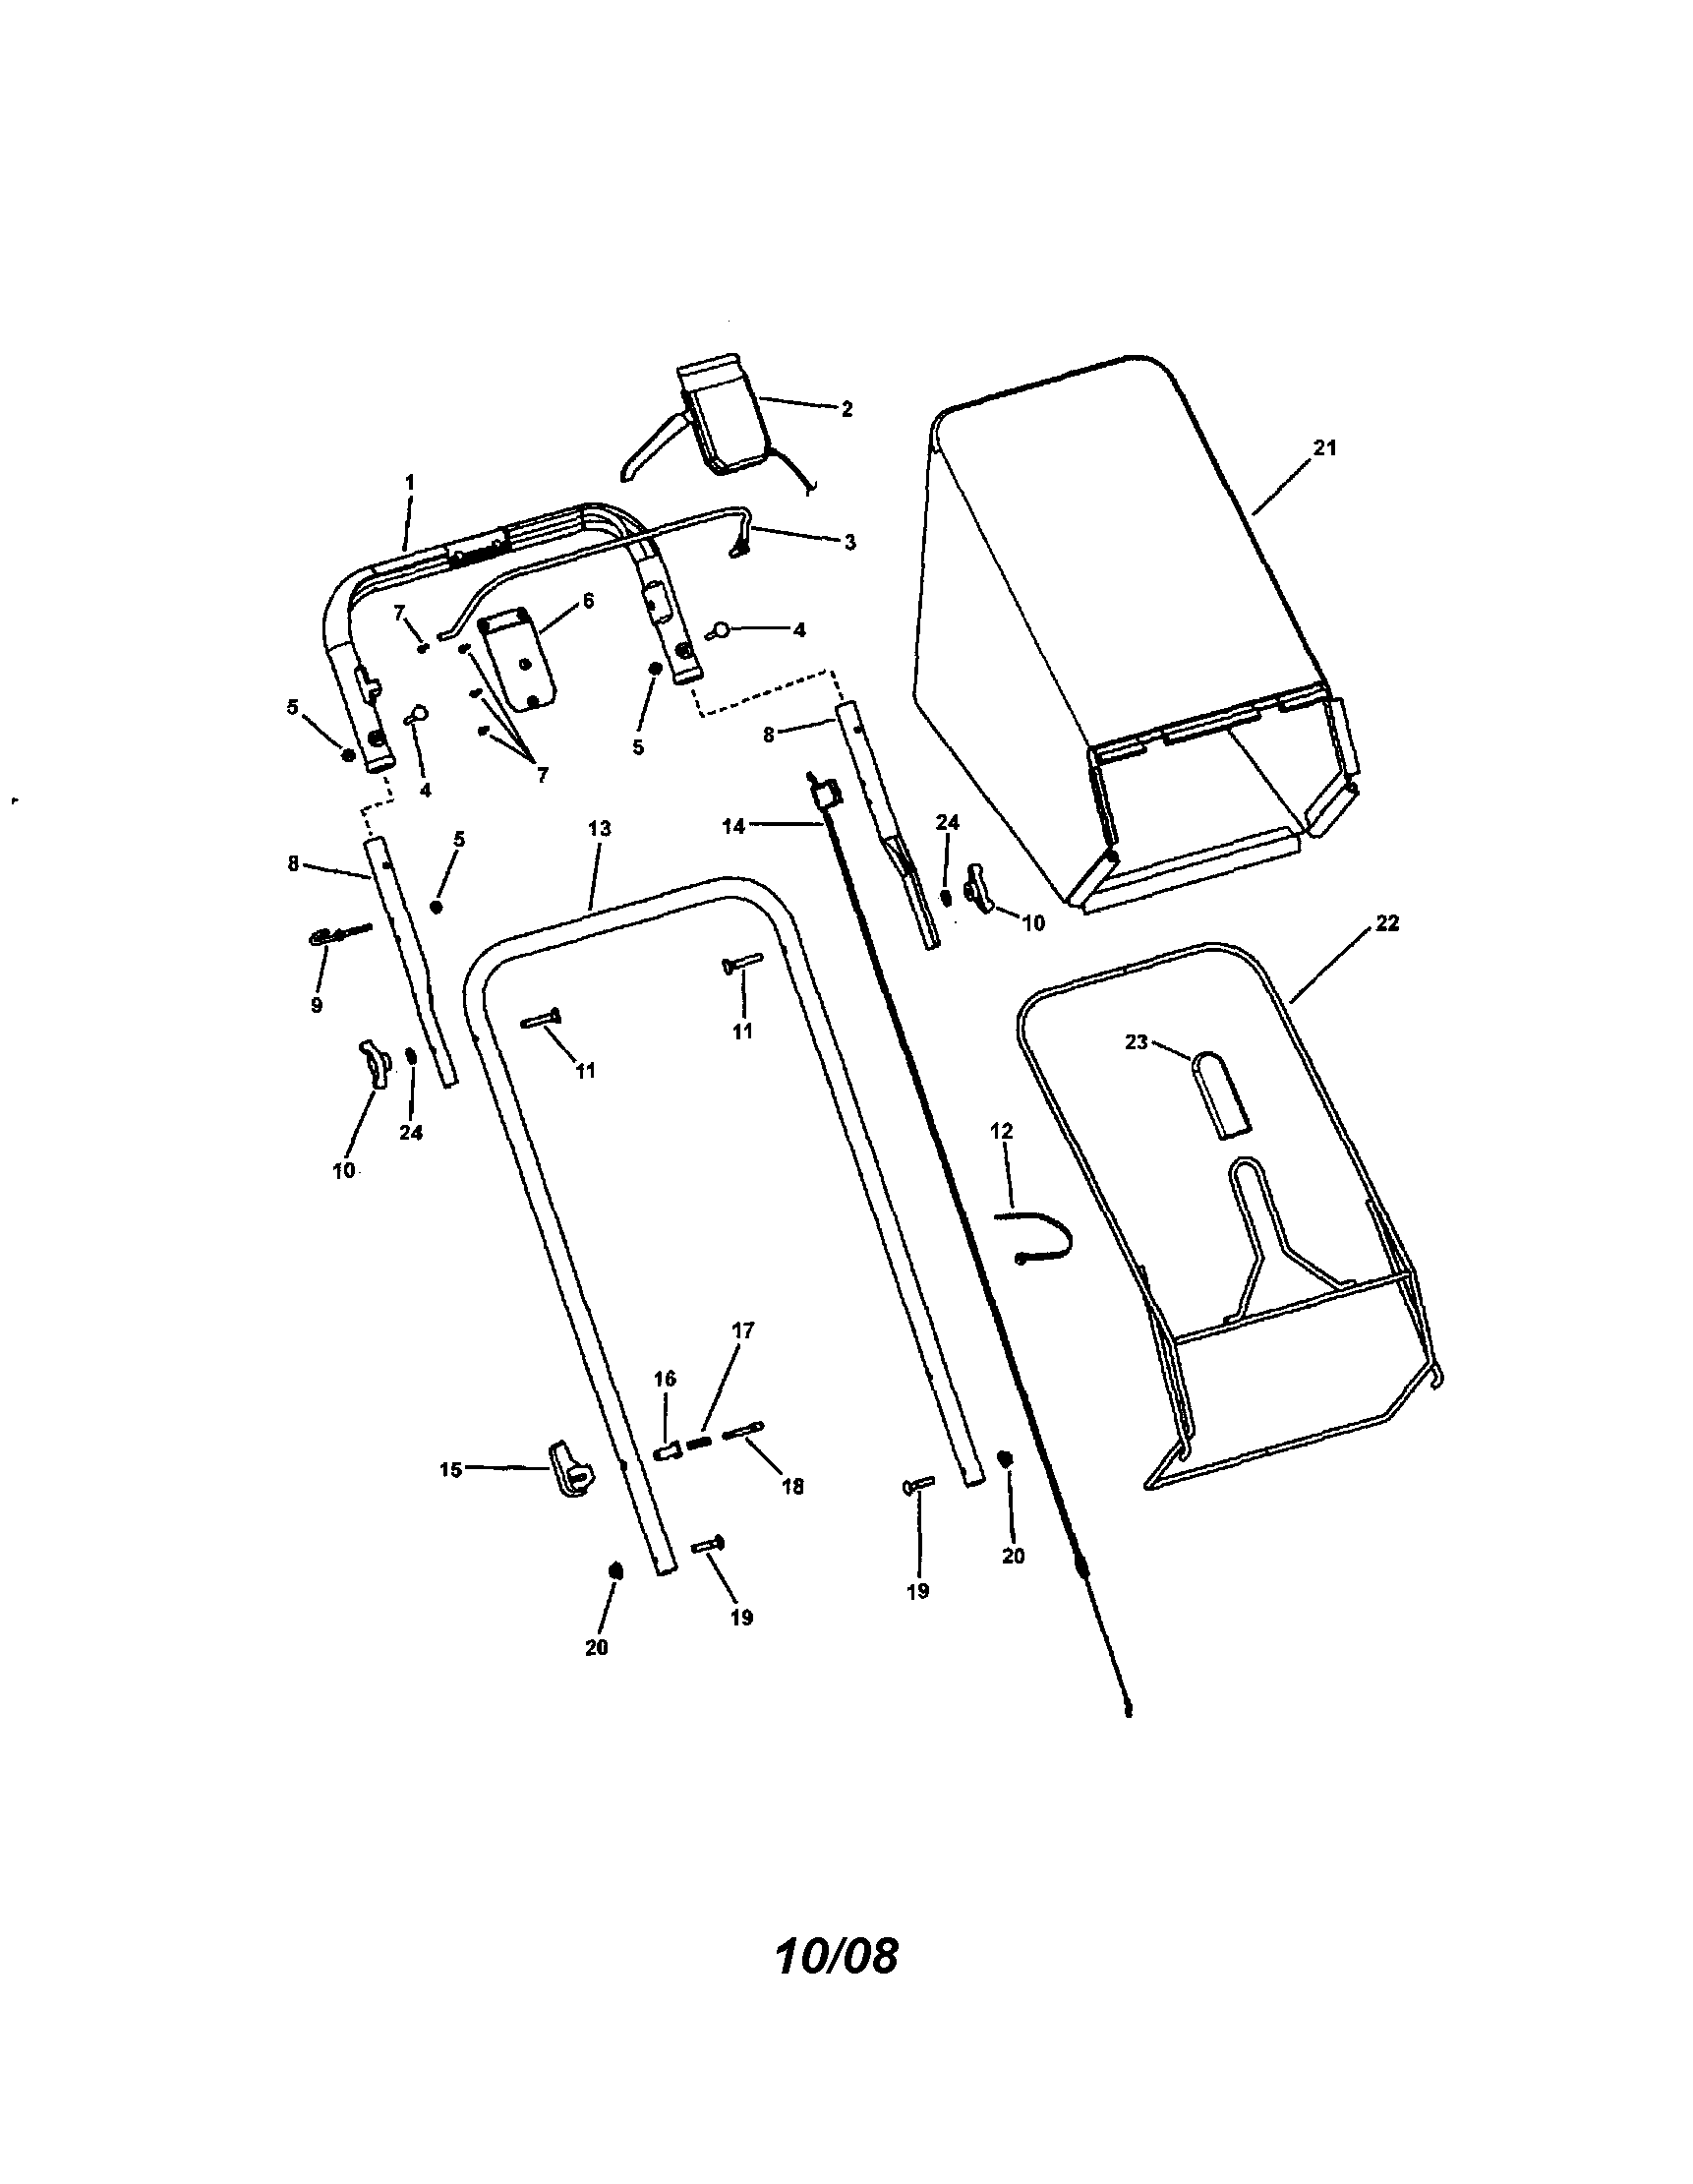 Snapper lawn mower parts model 7800190 sears partsdirect wiring schematics model h1ra042s06d york 2